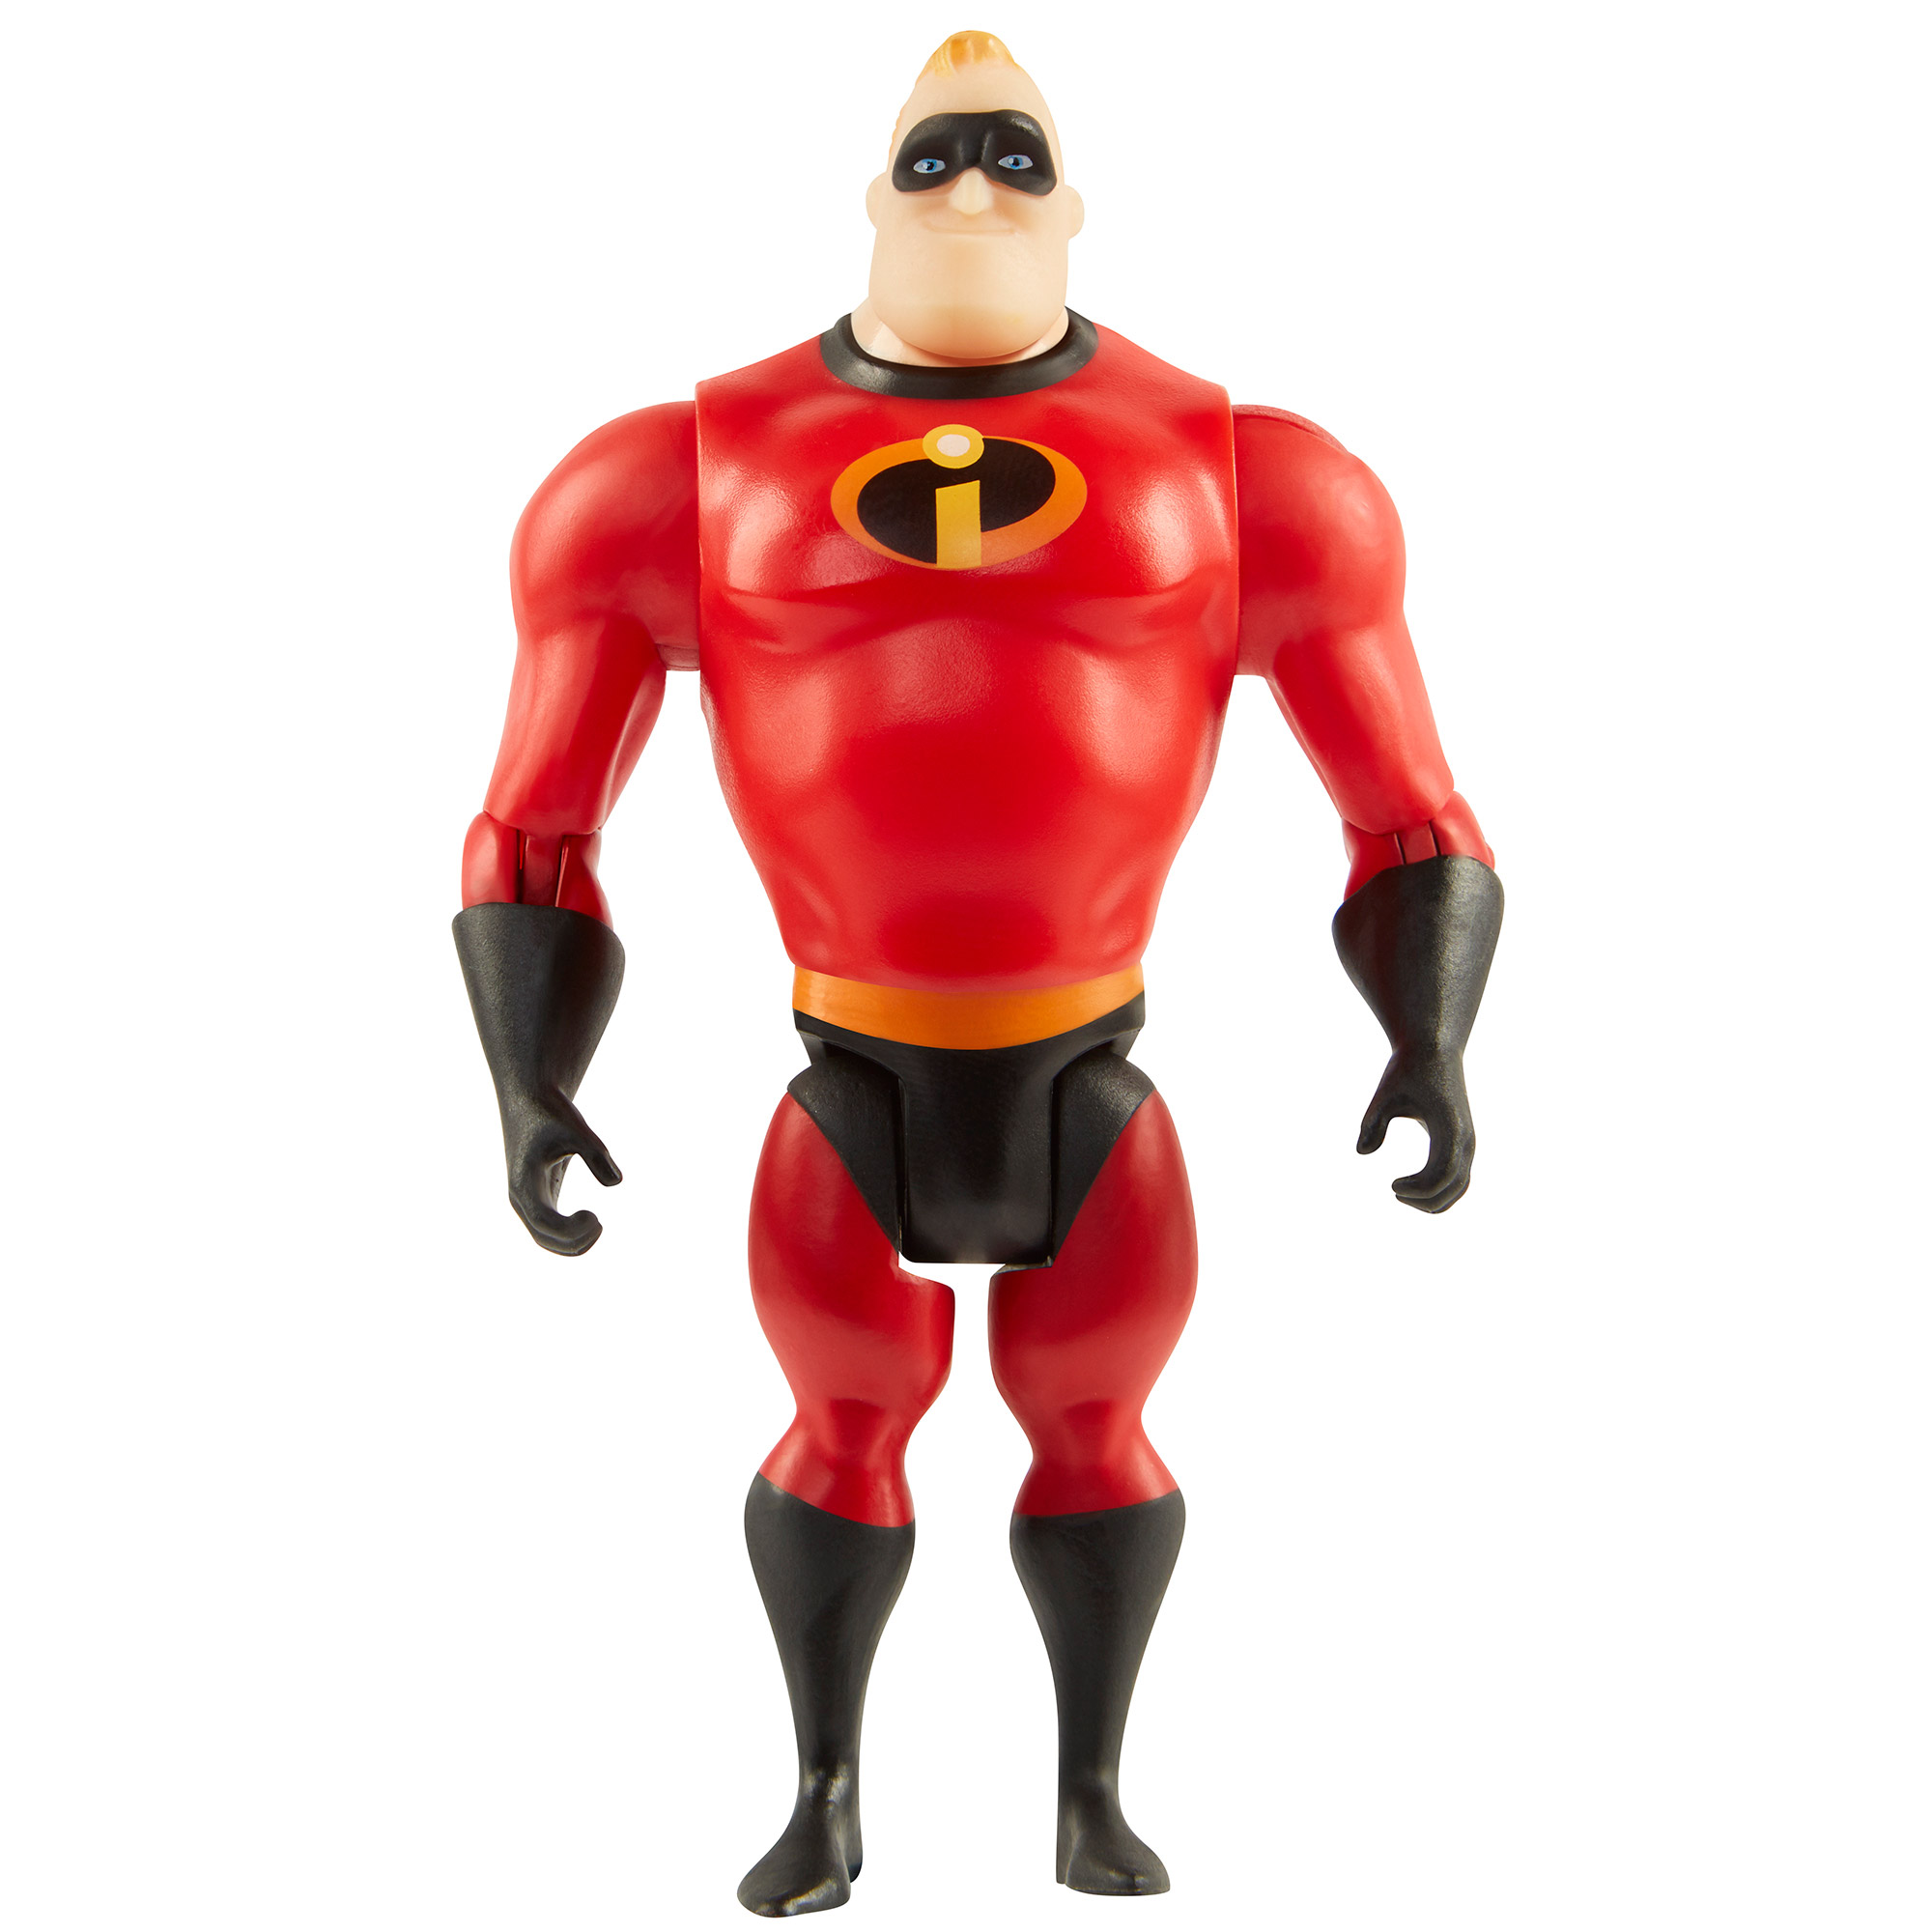 Mr. Incredible BIG-FIG™